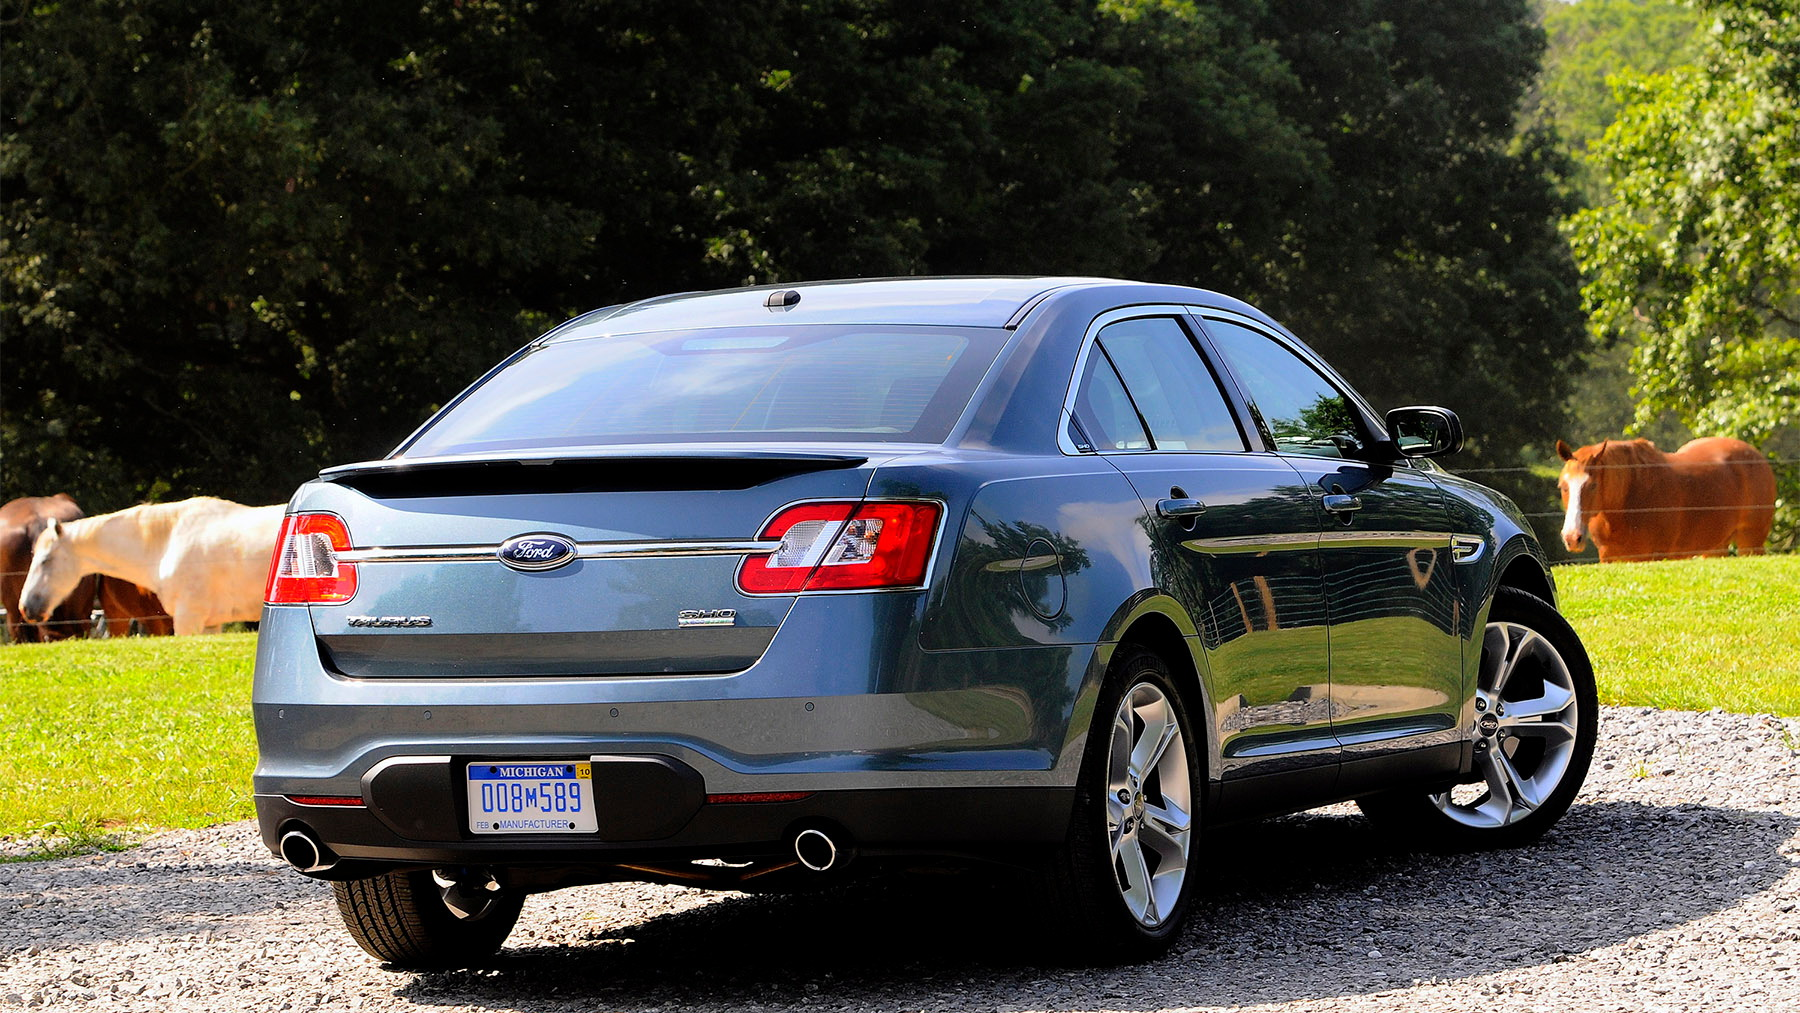 2010 ford taurus sho photo update june 2009 007